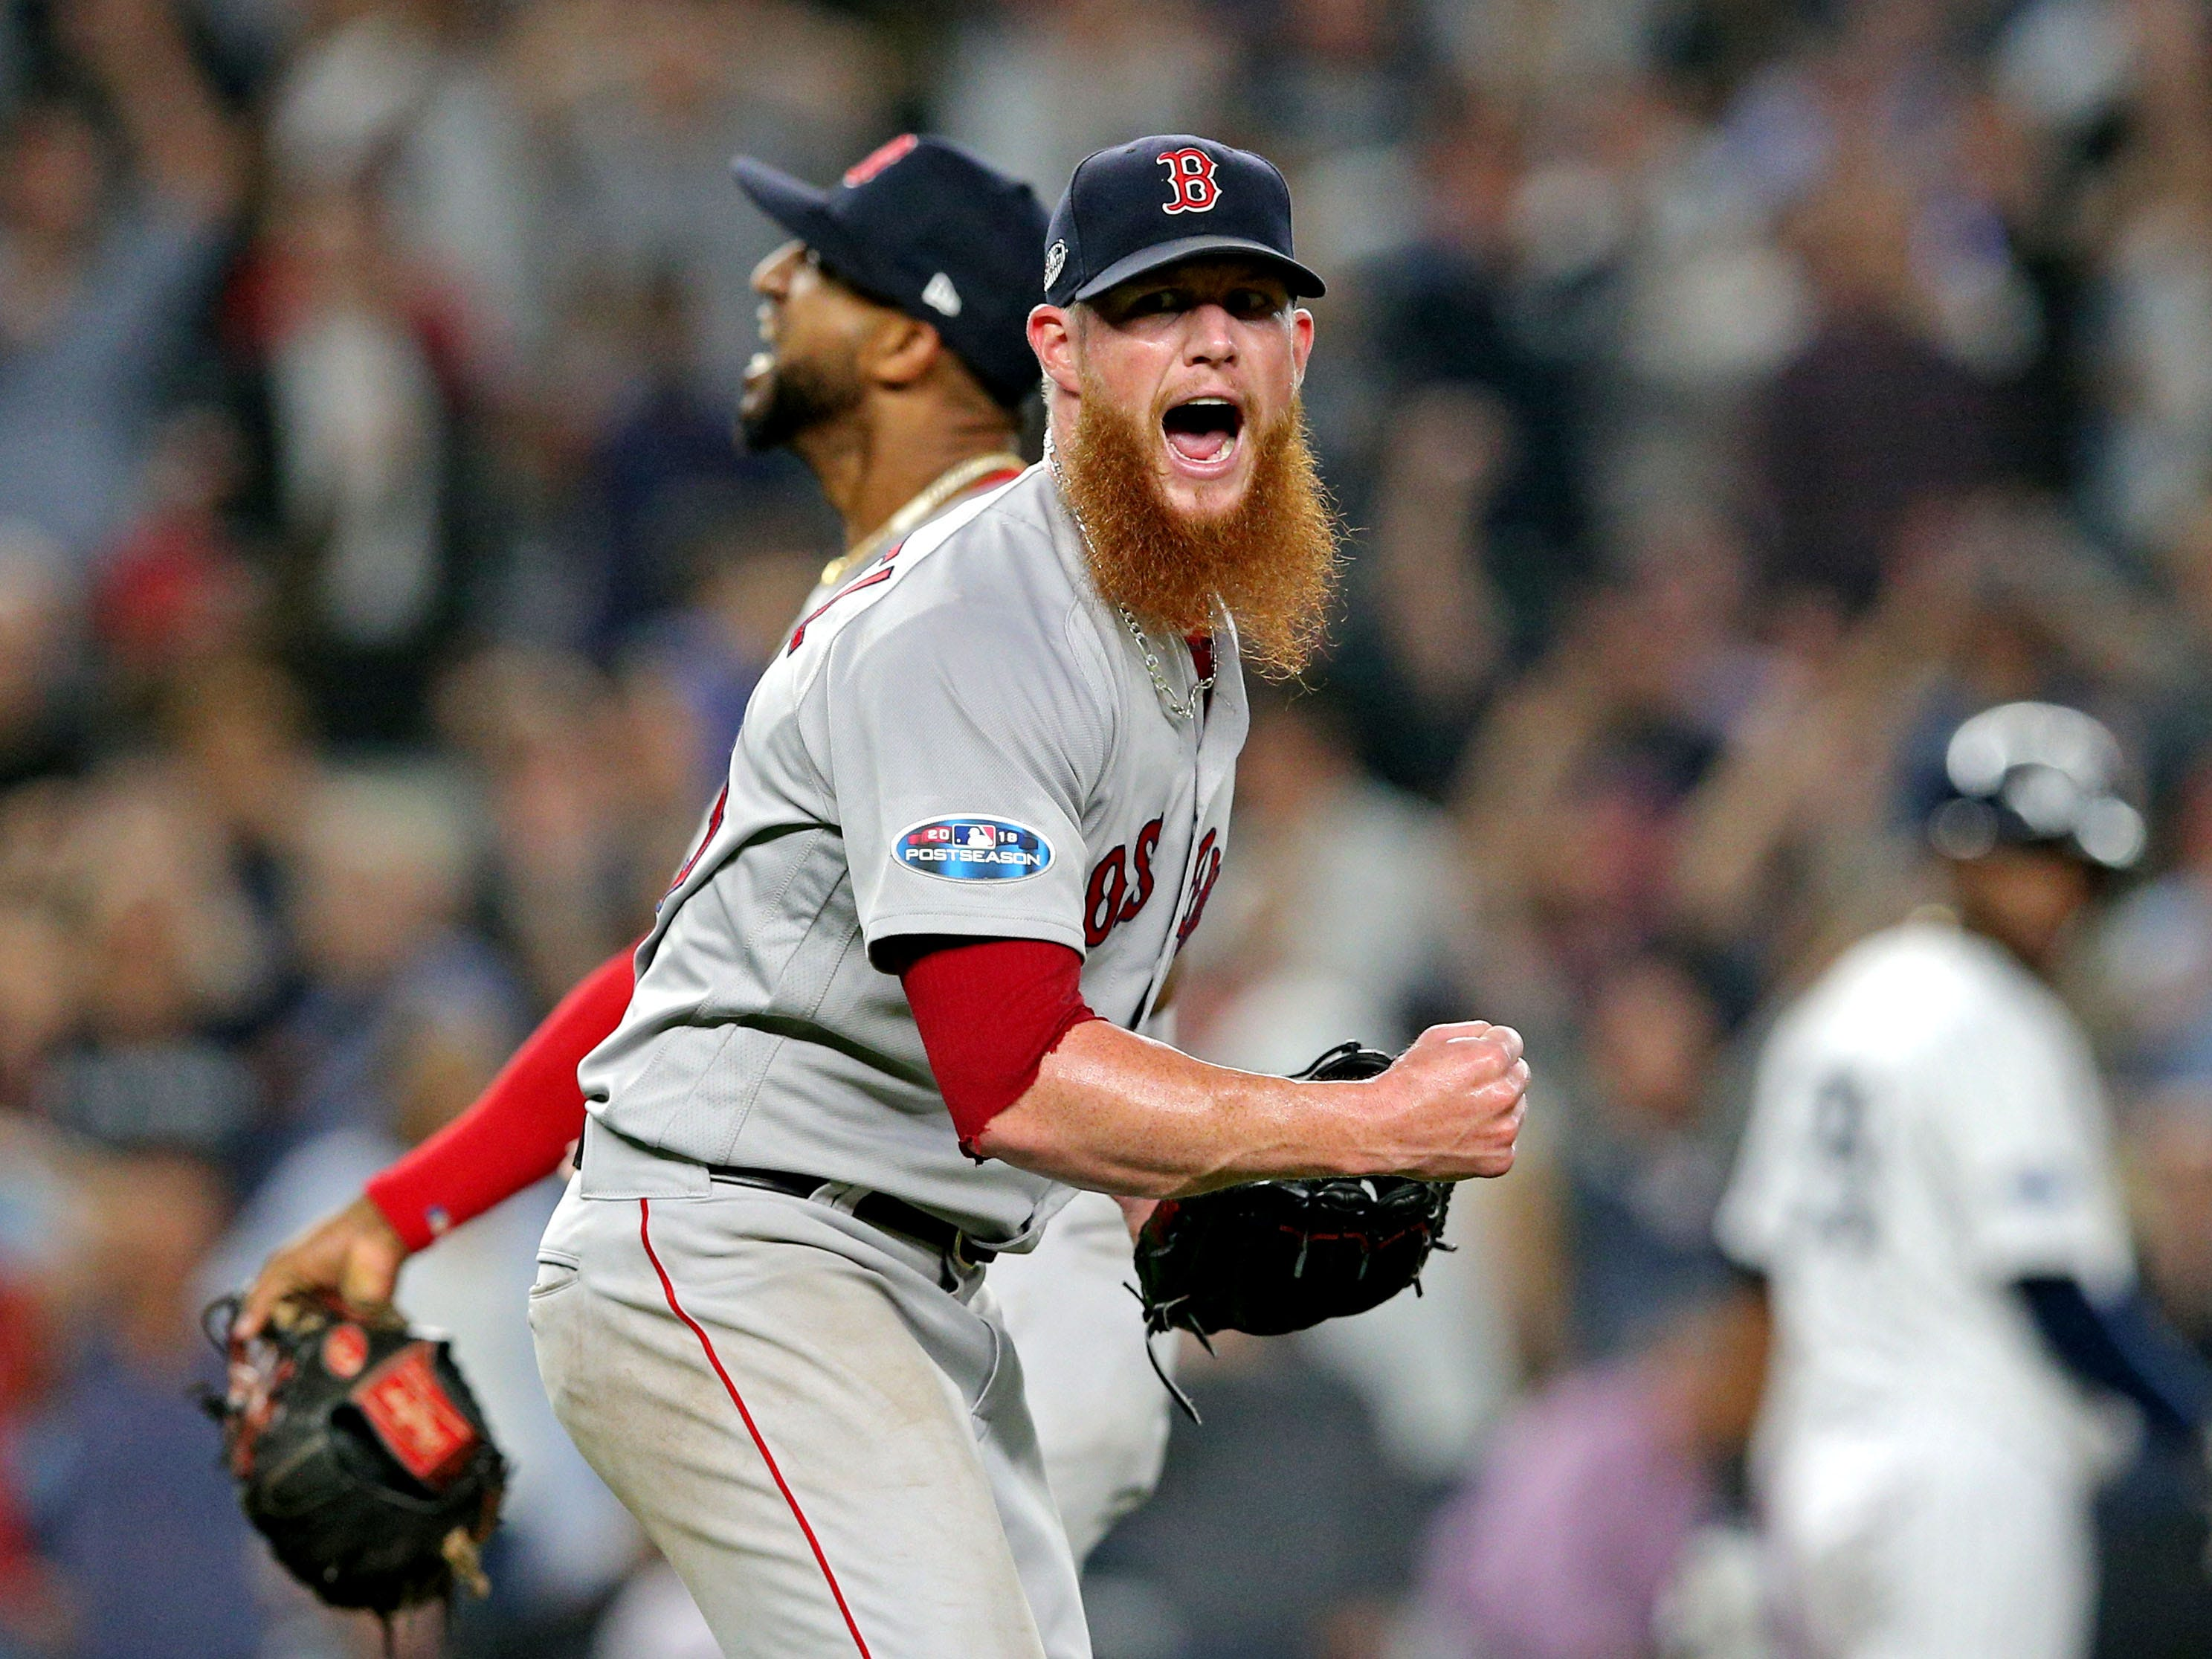 ALDS Game 4: Red Sox closer Craig Kimbrel is pumped after the last out in Game 4.